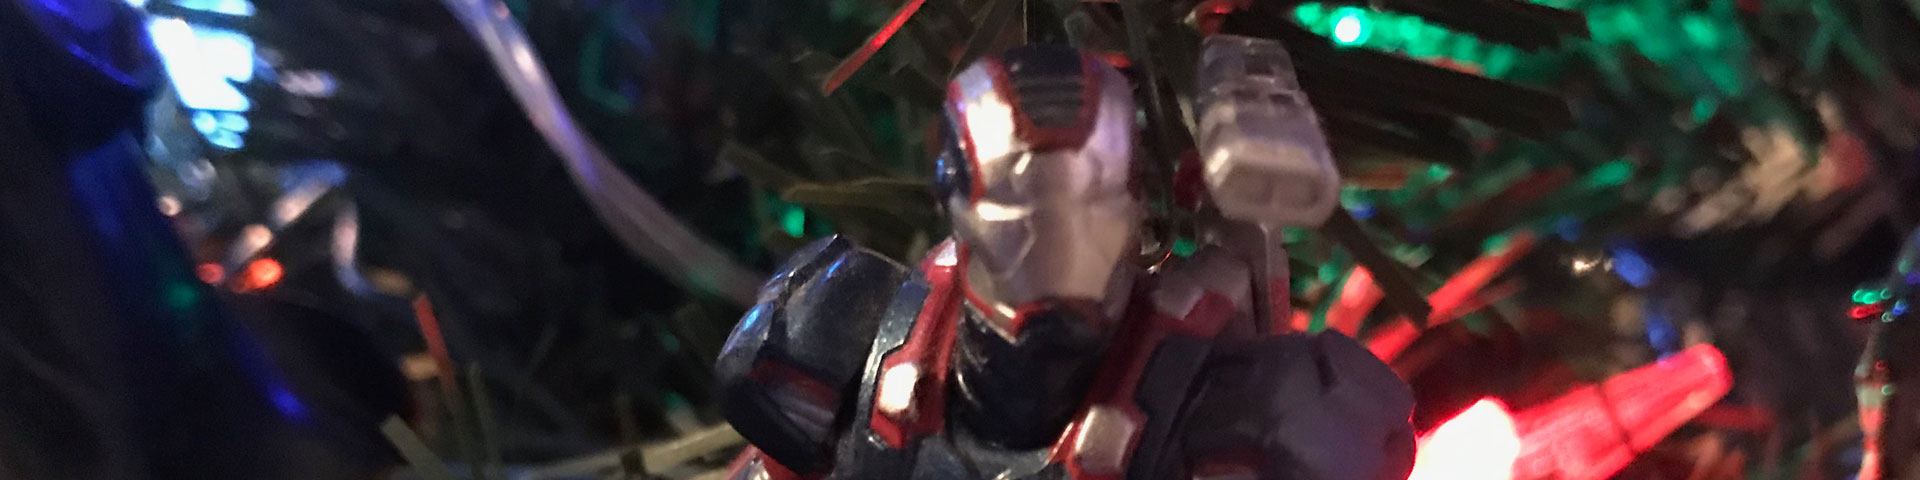 A close up view of the red, white, and blue Iron Man armor.